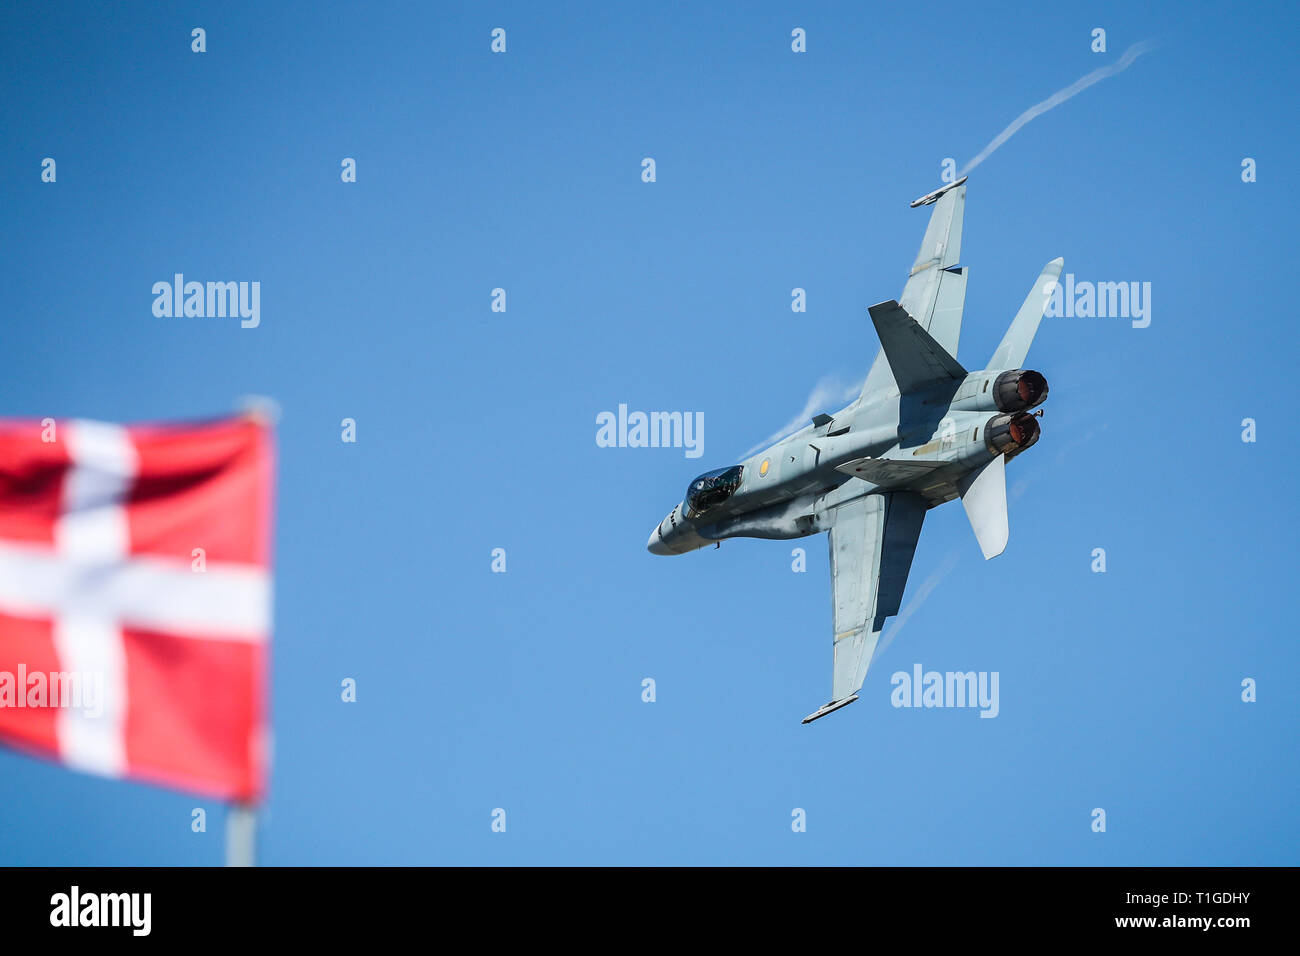 MELBOURNE, AUSTRALIA - MARCH 15: RAAF F/A-18 Reconnaissance completes an aerial display on day 2 of the 2019 Formula 1 Australian Grand Prix - Stock Image